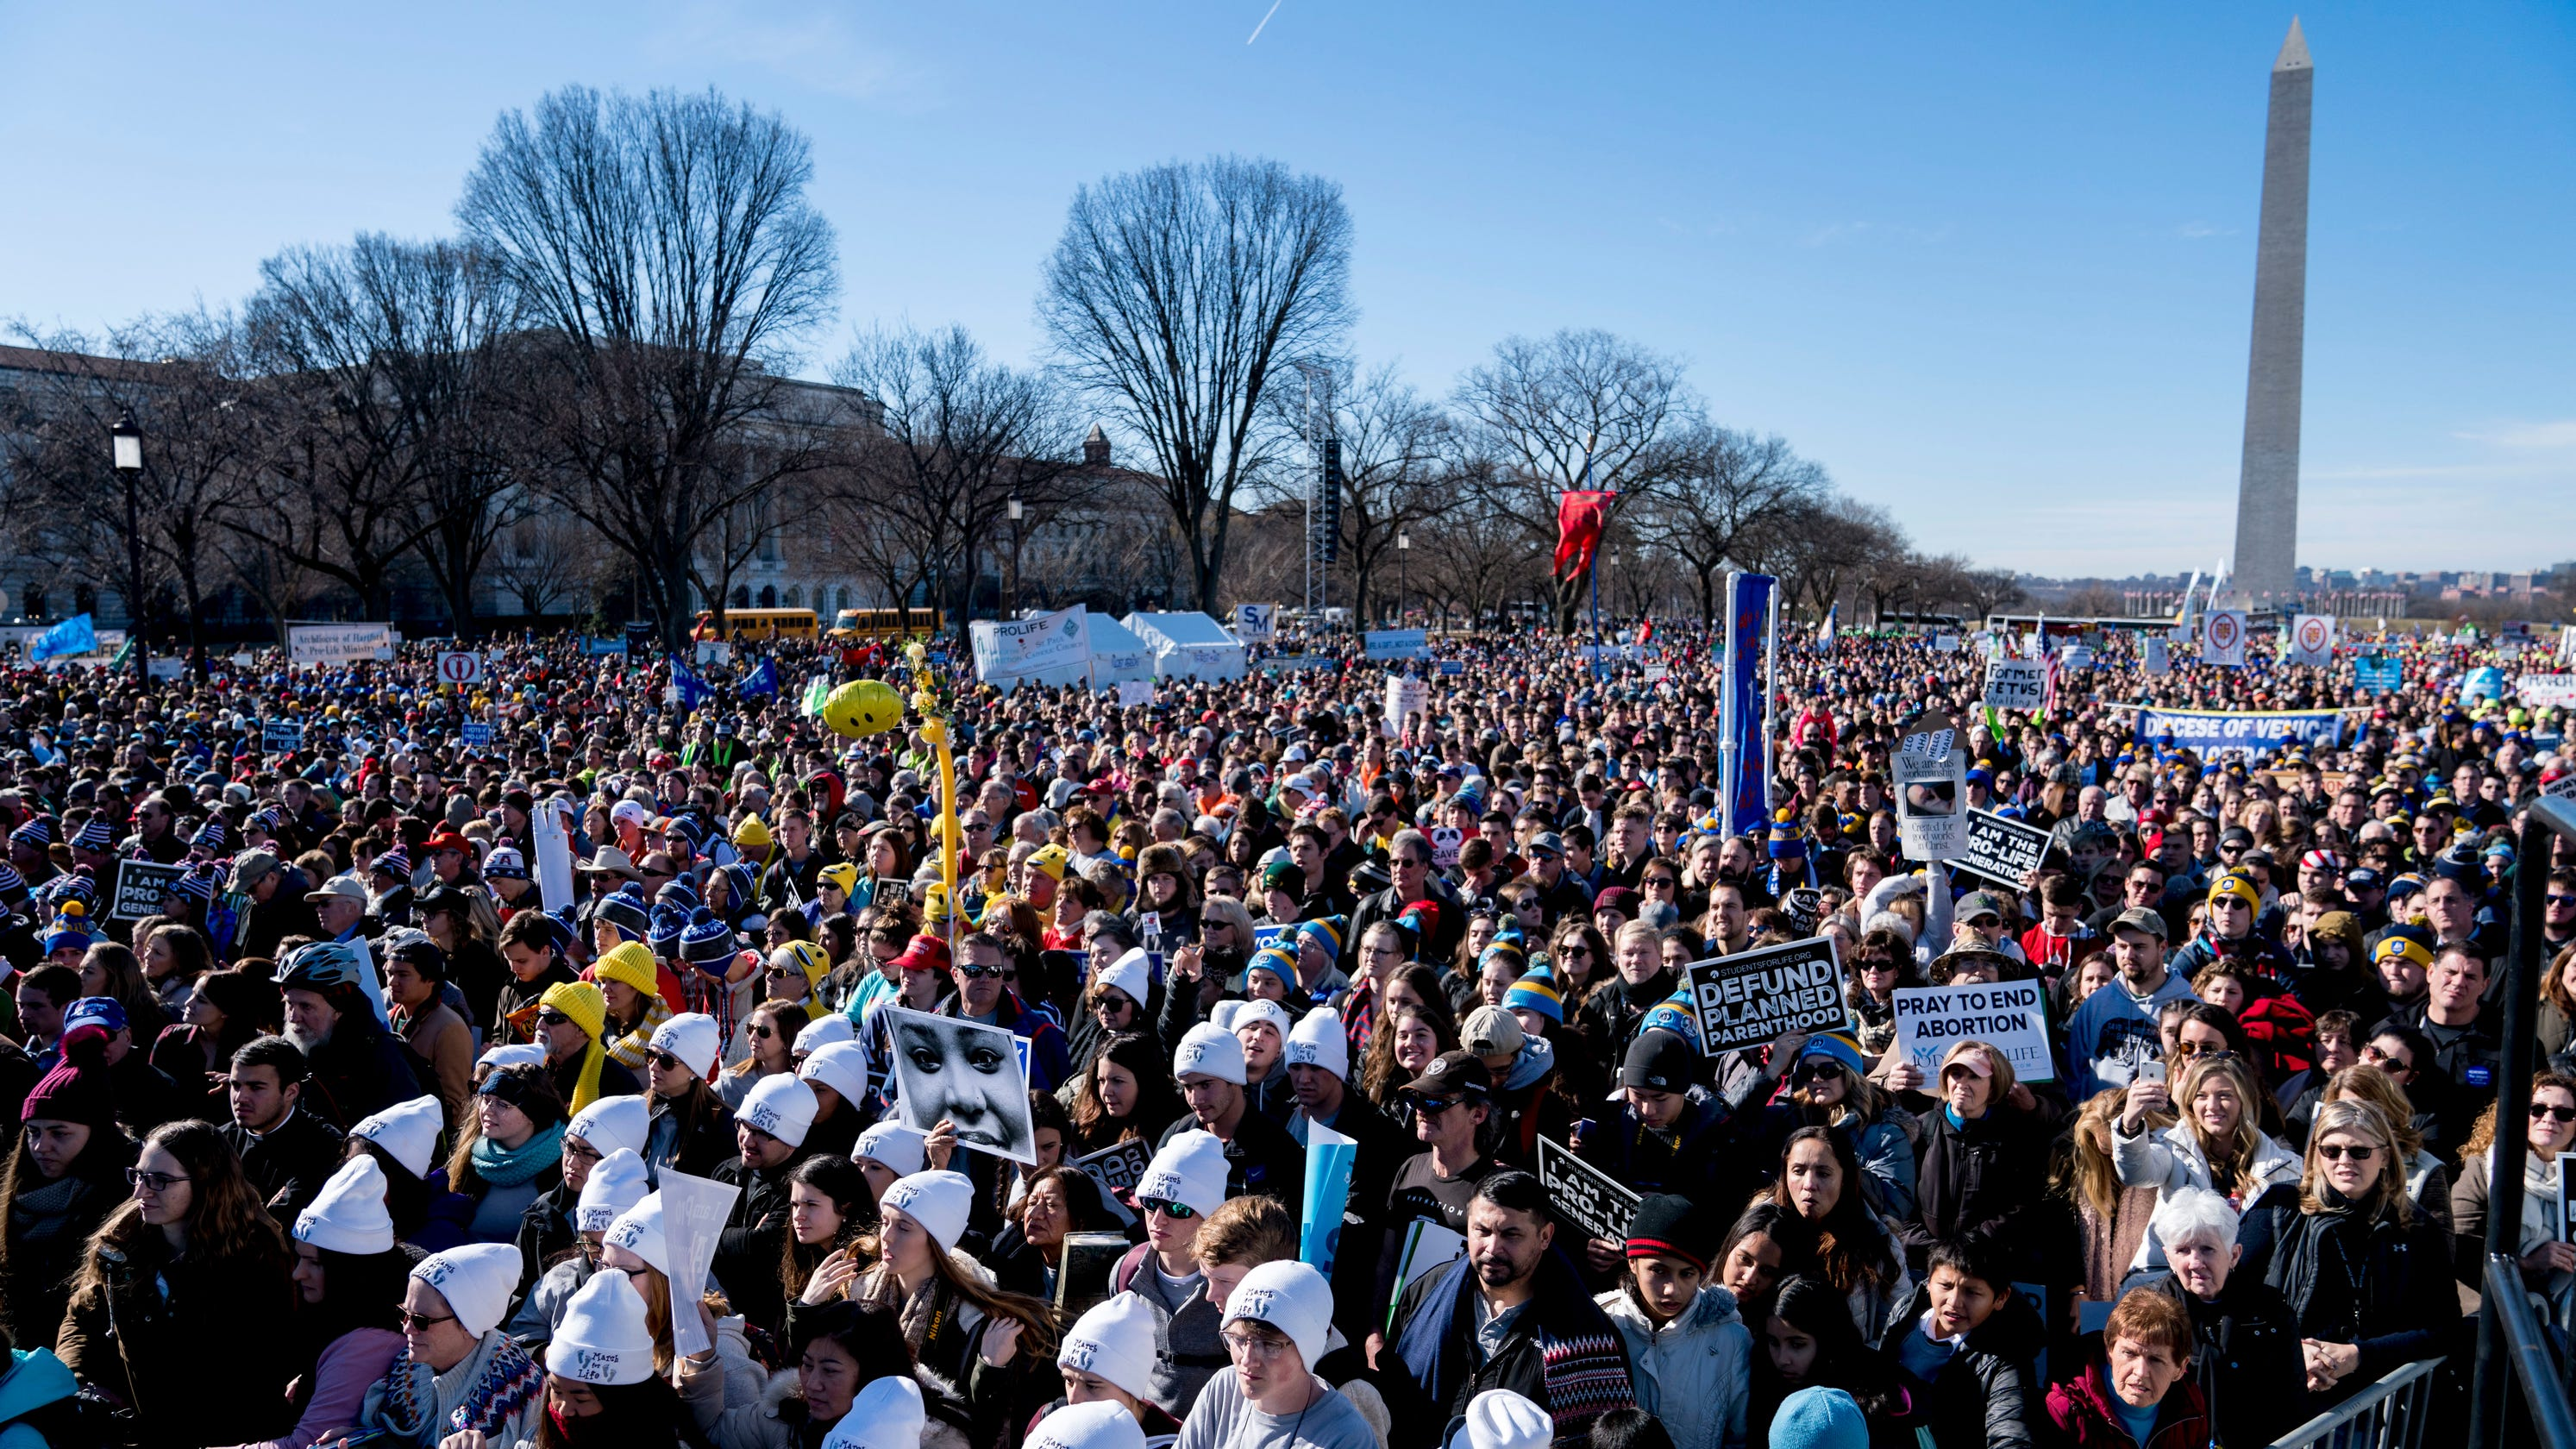 March for Life 2019 live: Thousands say 'all life matters'